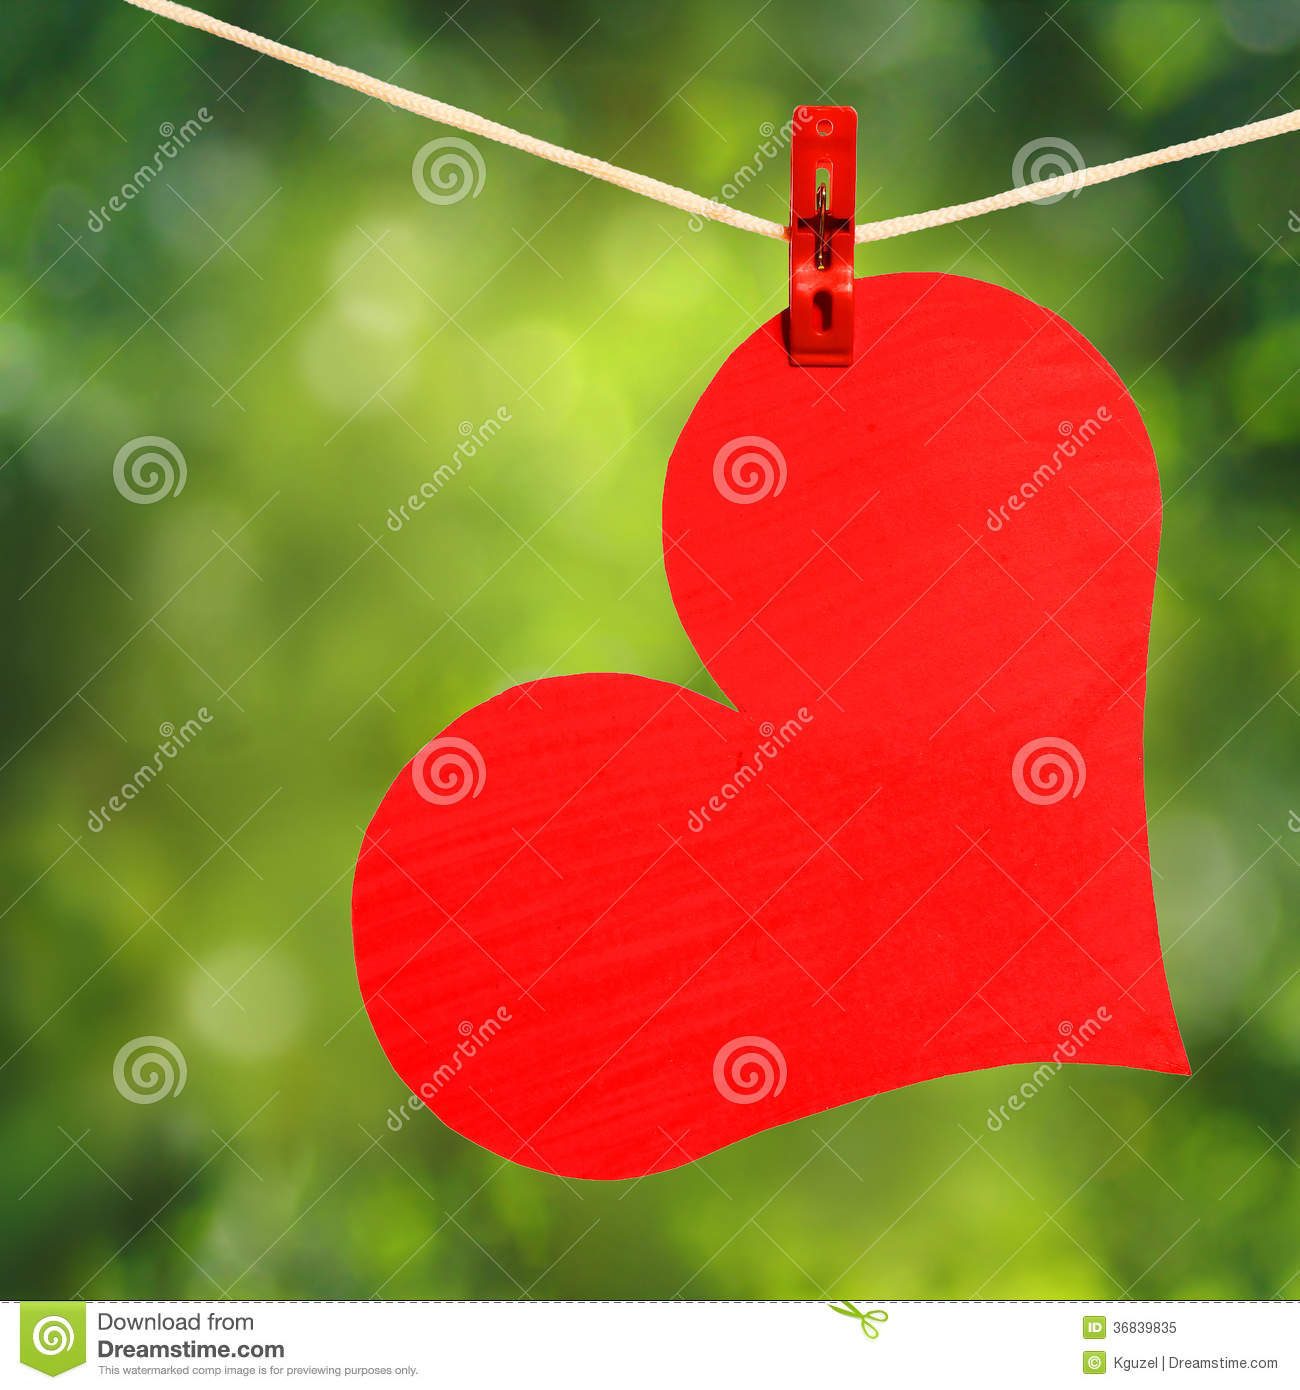 Nature Images 2mb: Red Heart With Clothespin Hanging On Clothesline Over